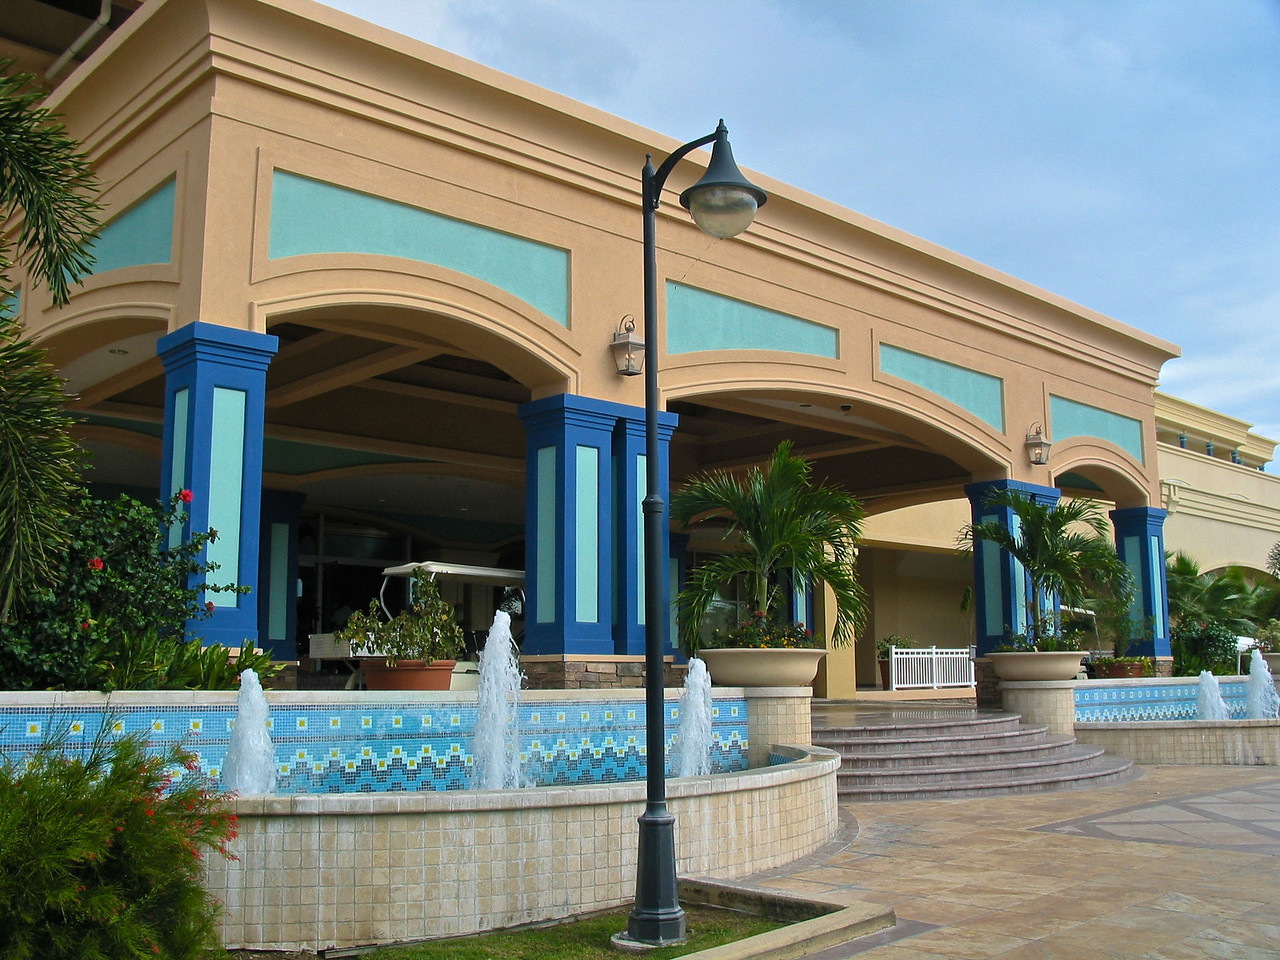 One of the largest hotels on the island, there are hundreds of rooms and plenty of room to spread out.